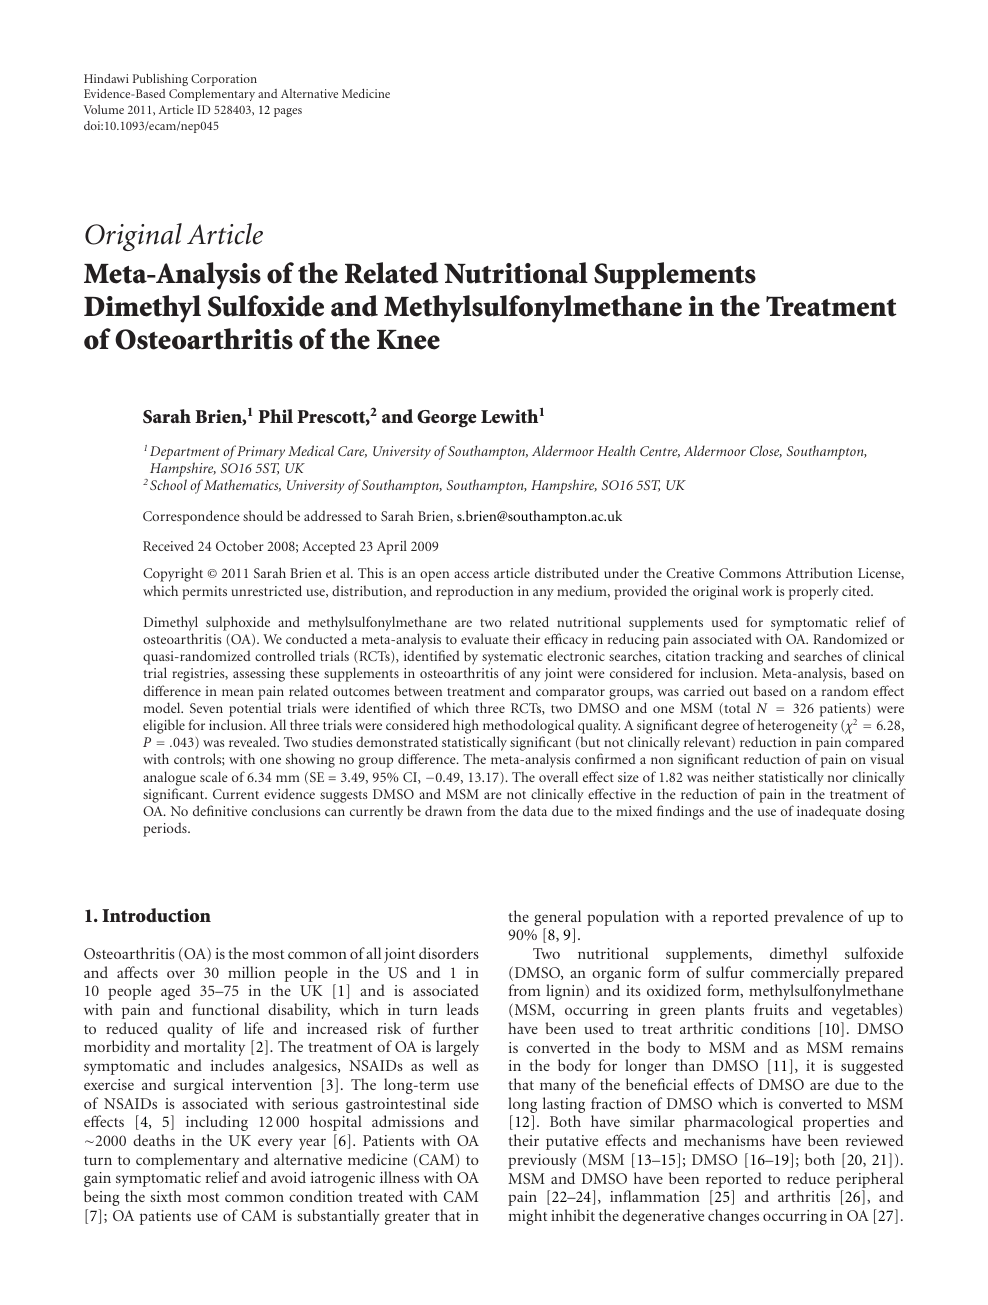 Meta-Analysis of the Related Nutritional Supplements